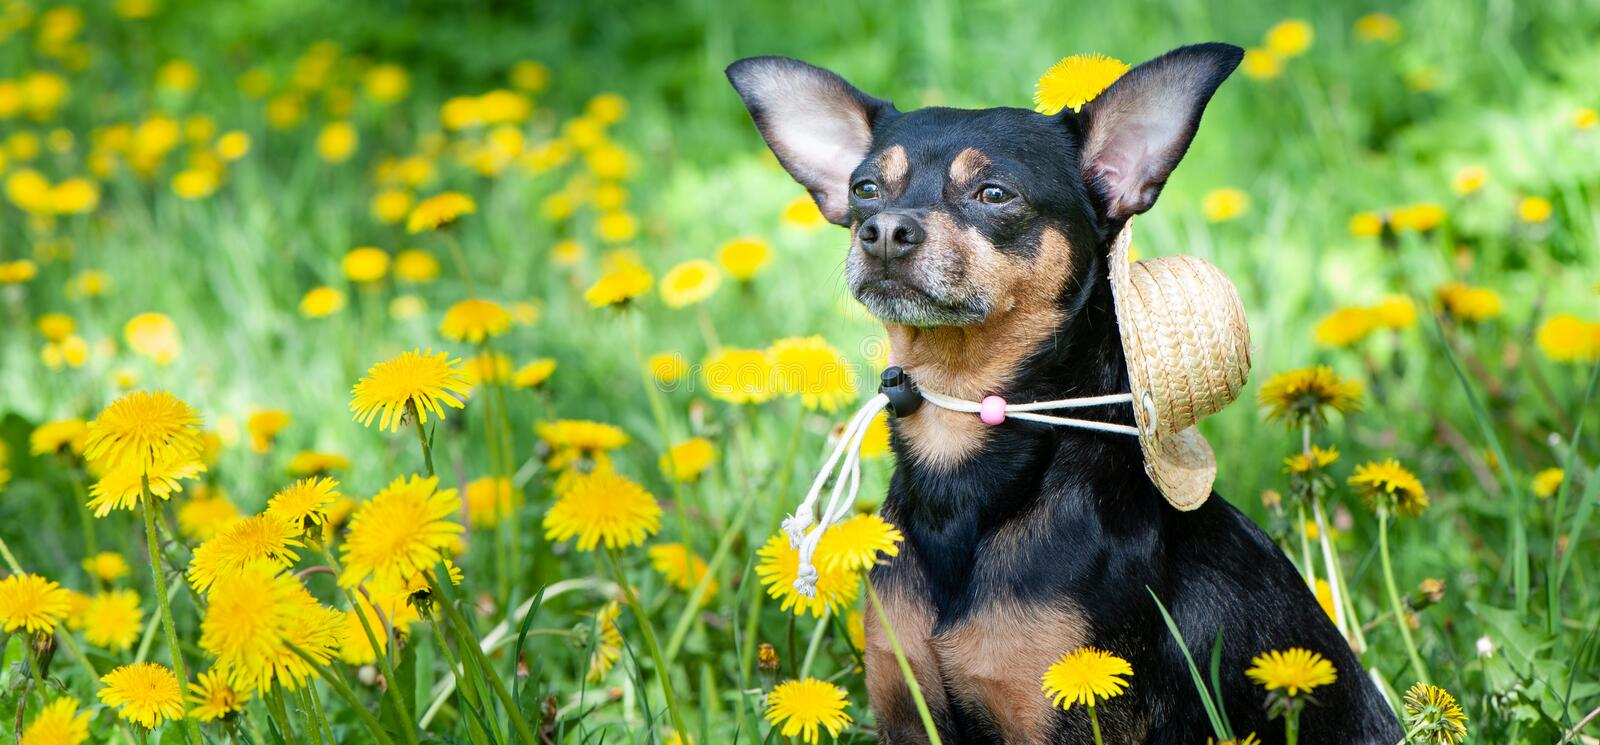 Cute puppy, dog in spring yellow colors on a flowered meadow, portrait of a dog. royalty free stock photos